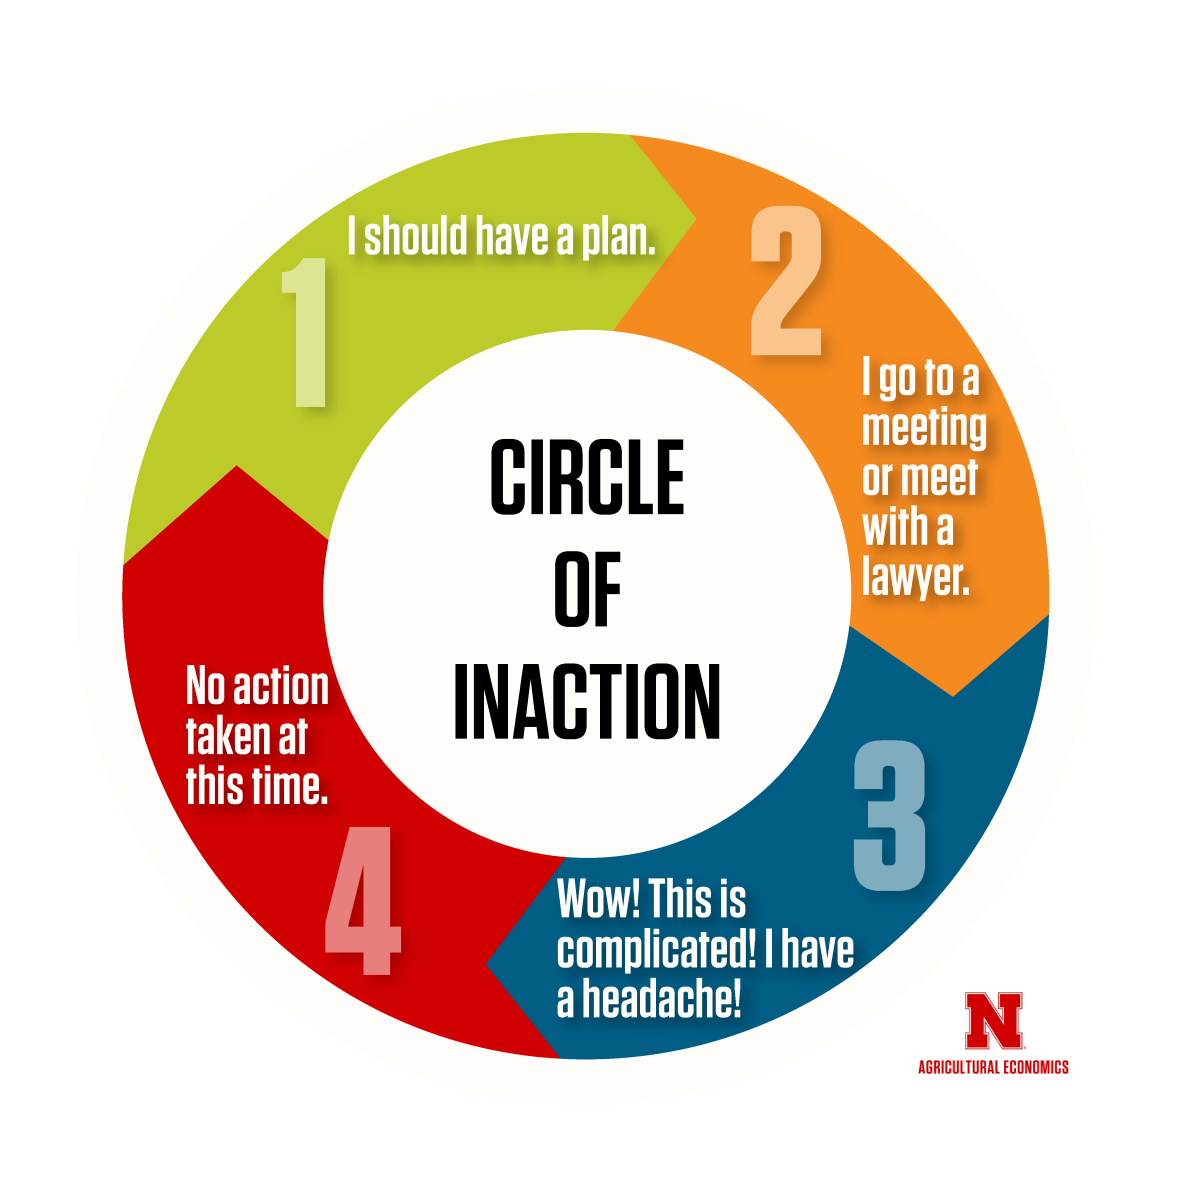 Circle of Inaction